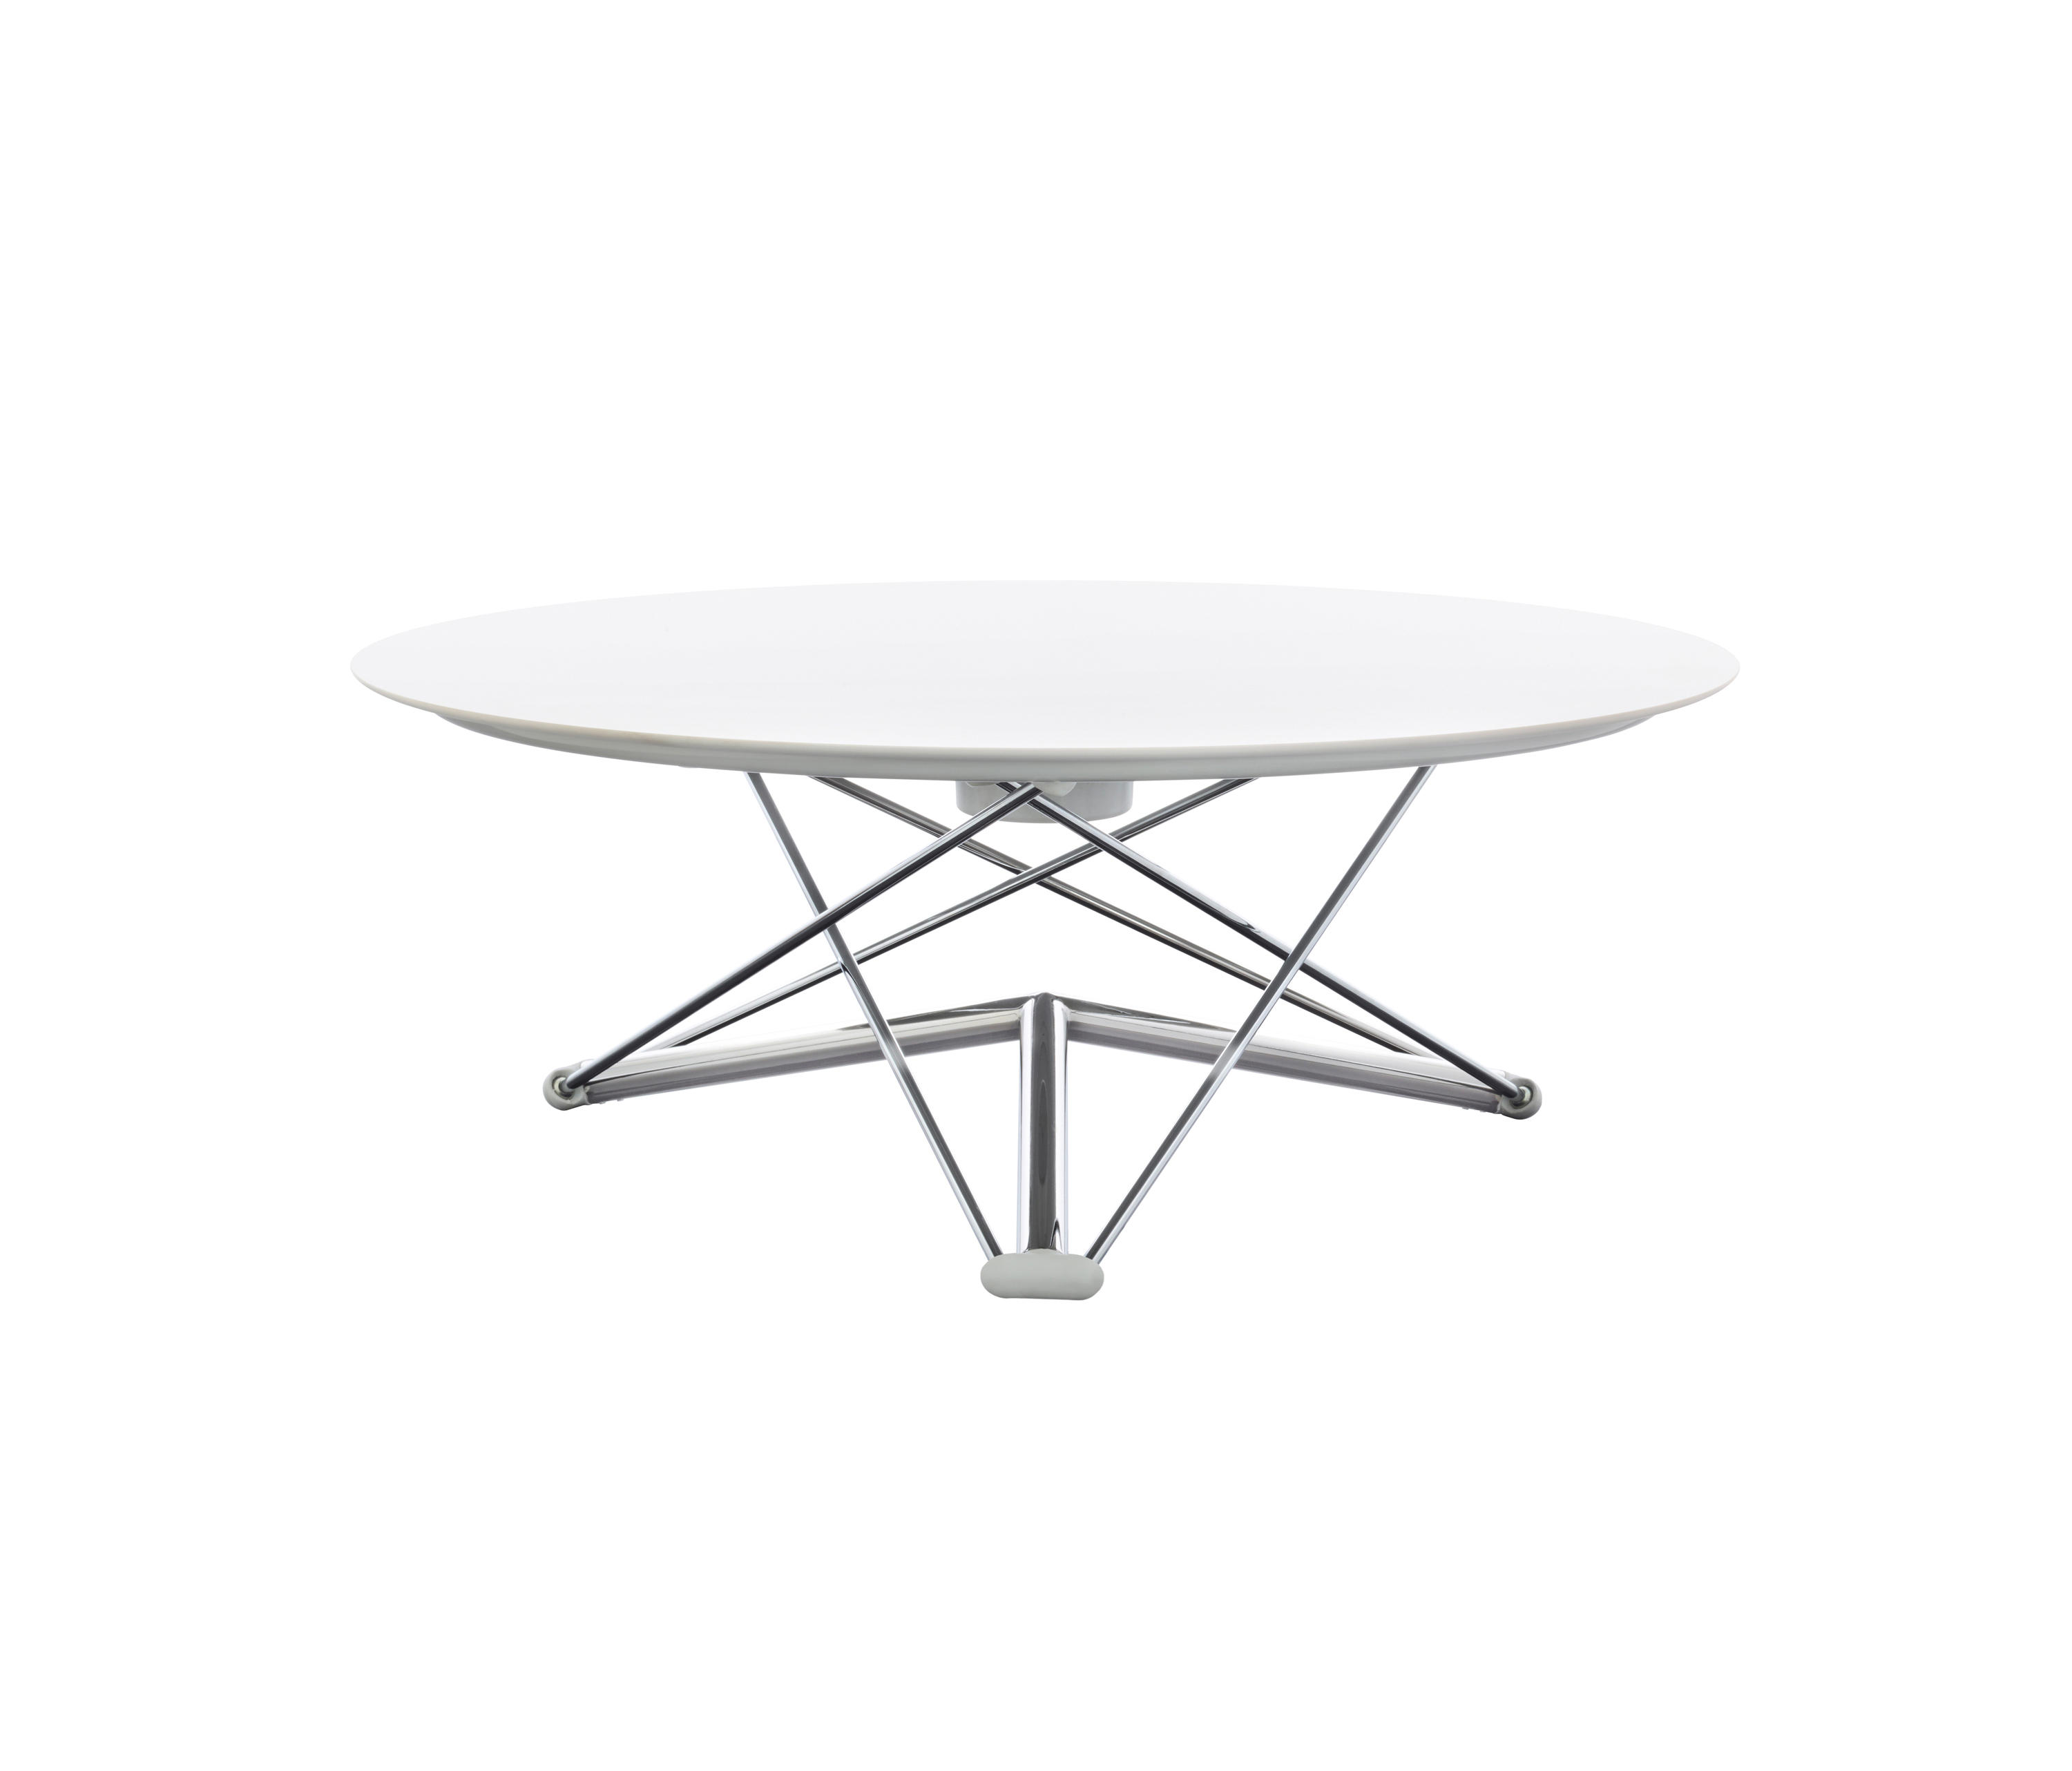 DINING TABLES HEIGHT ADJUSTABLE High quality designer DINING